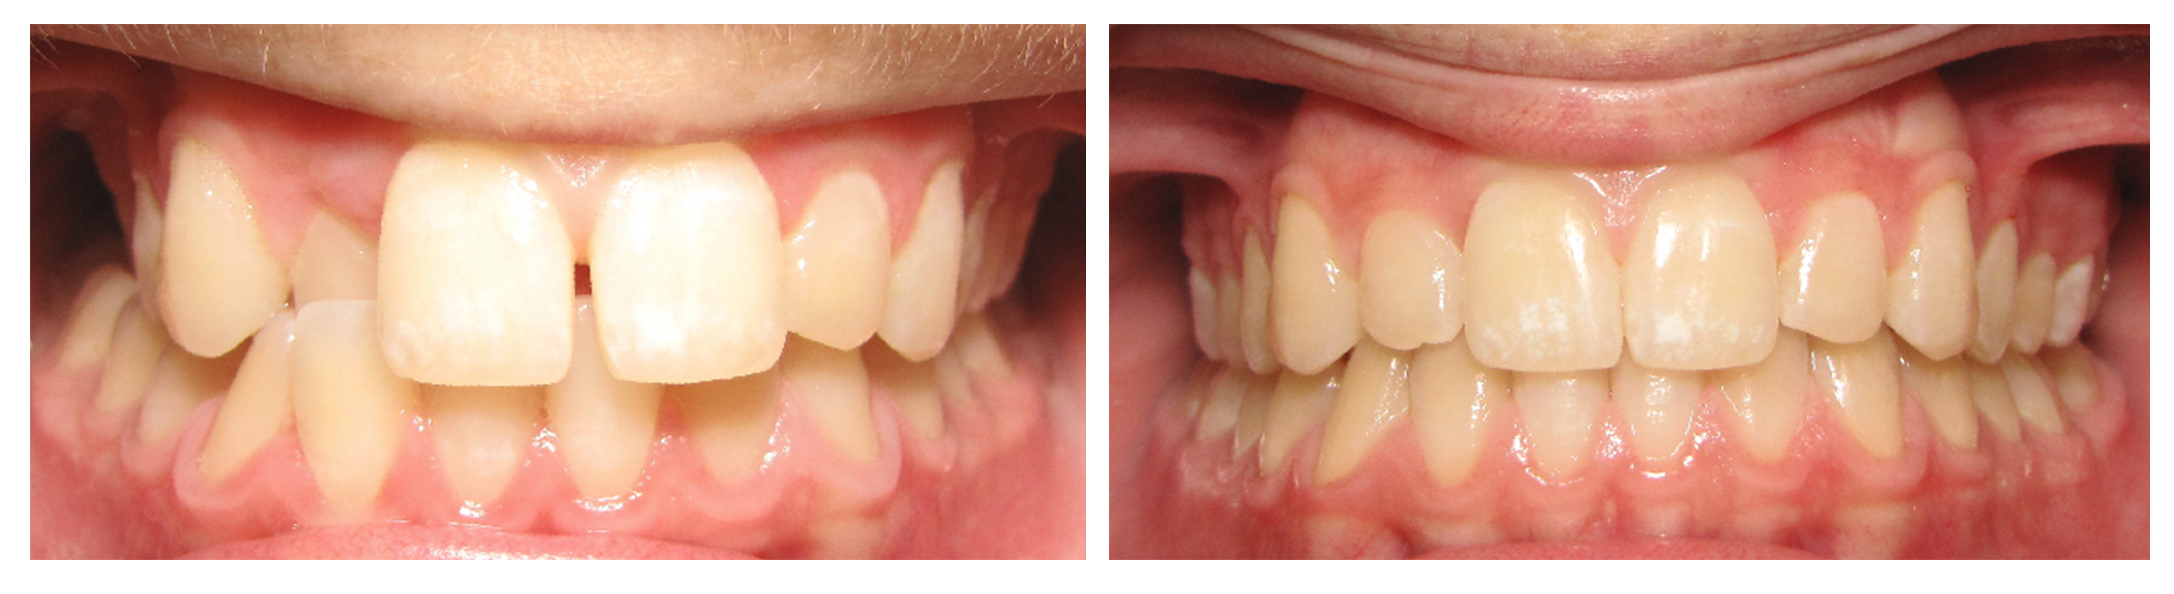 Teen boy anterior before & after Invisalign